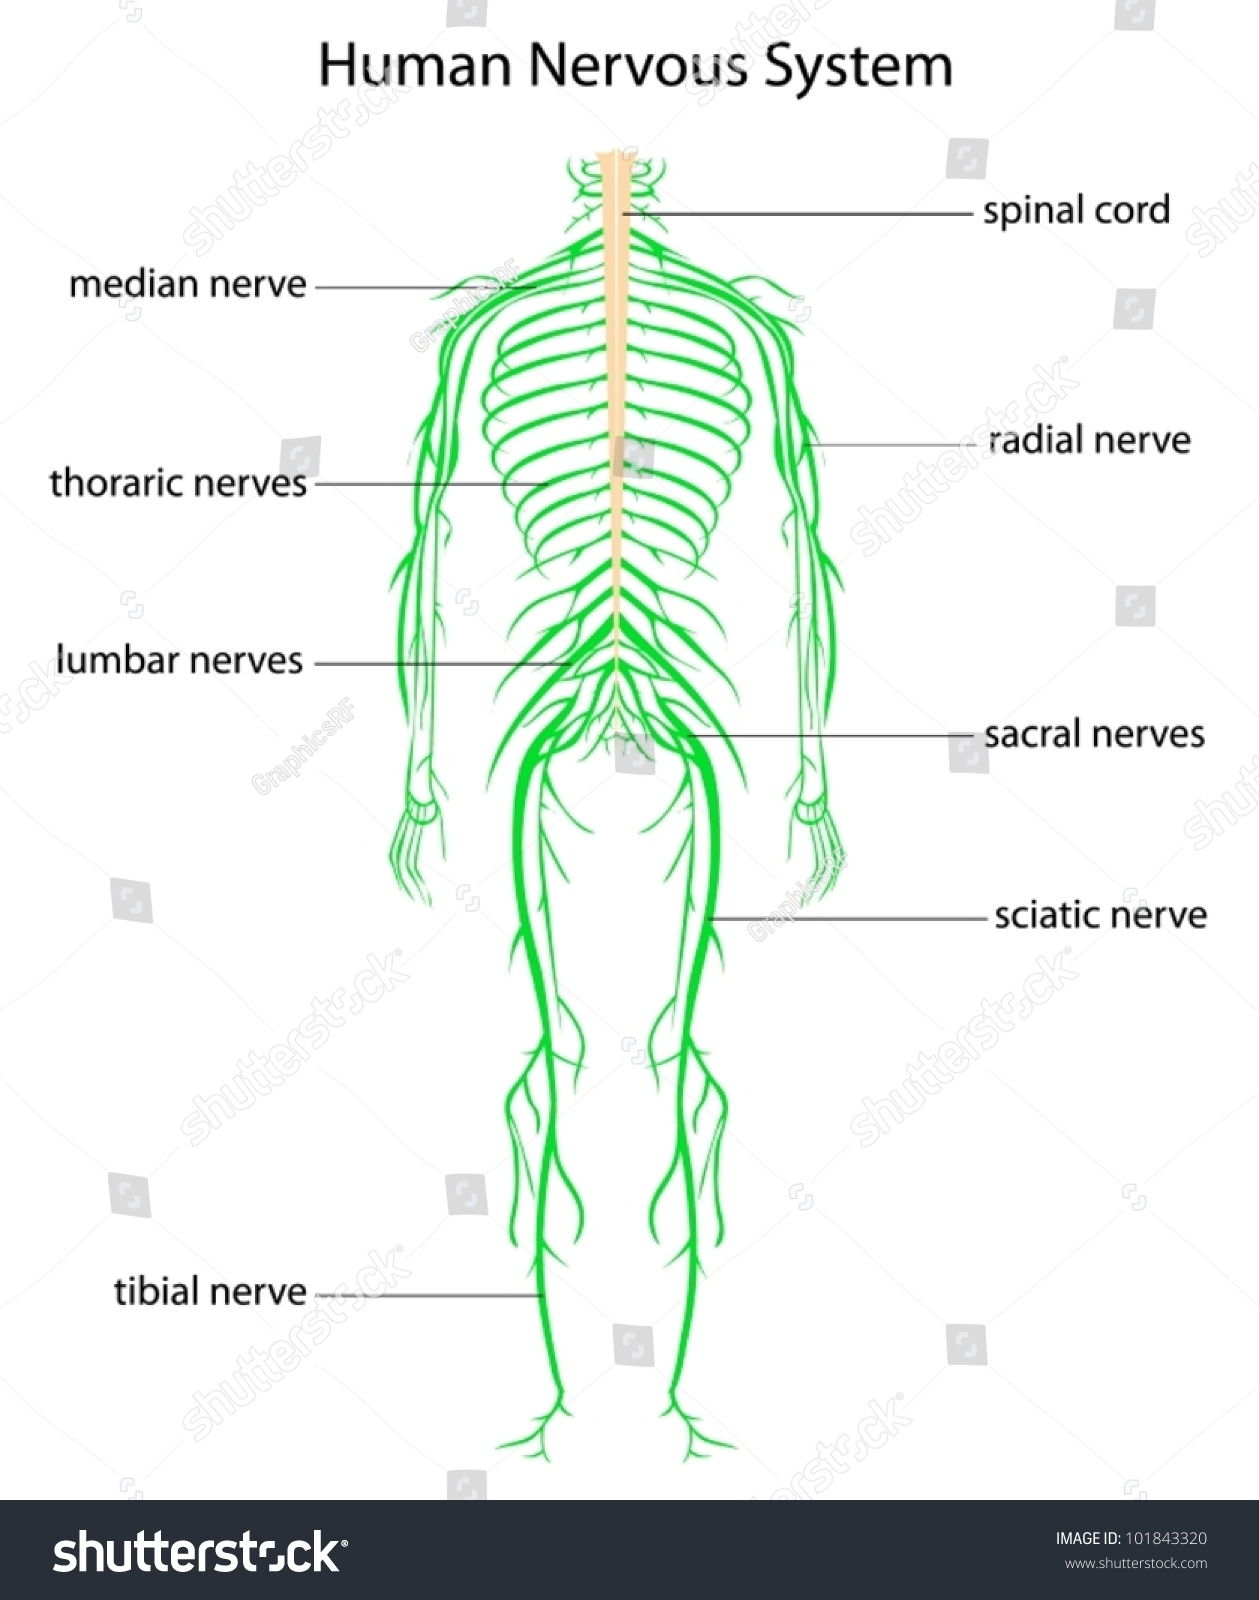 worksheet Central Nervous System Worksheet nervous system diagram worksheet photos pigmu the laveyla com